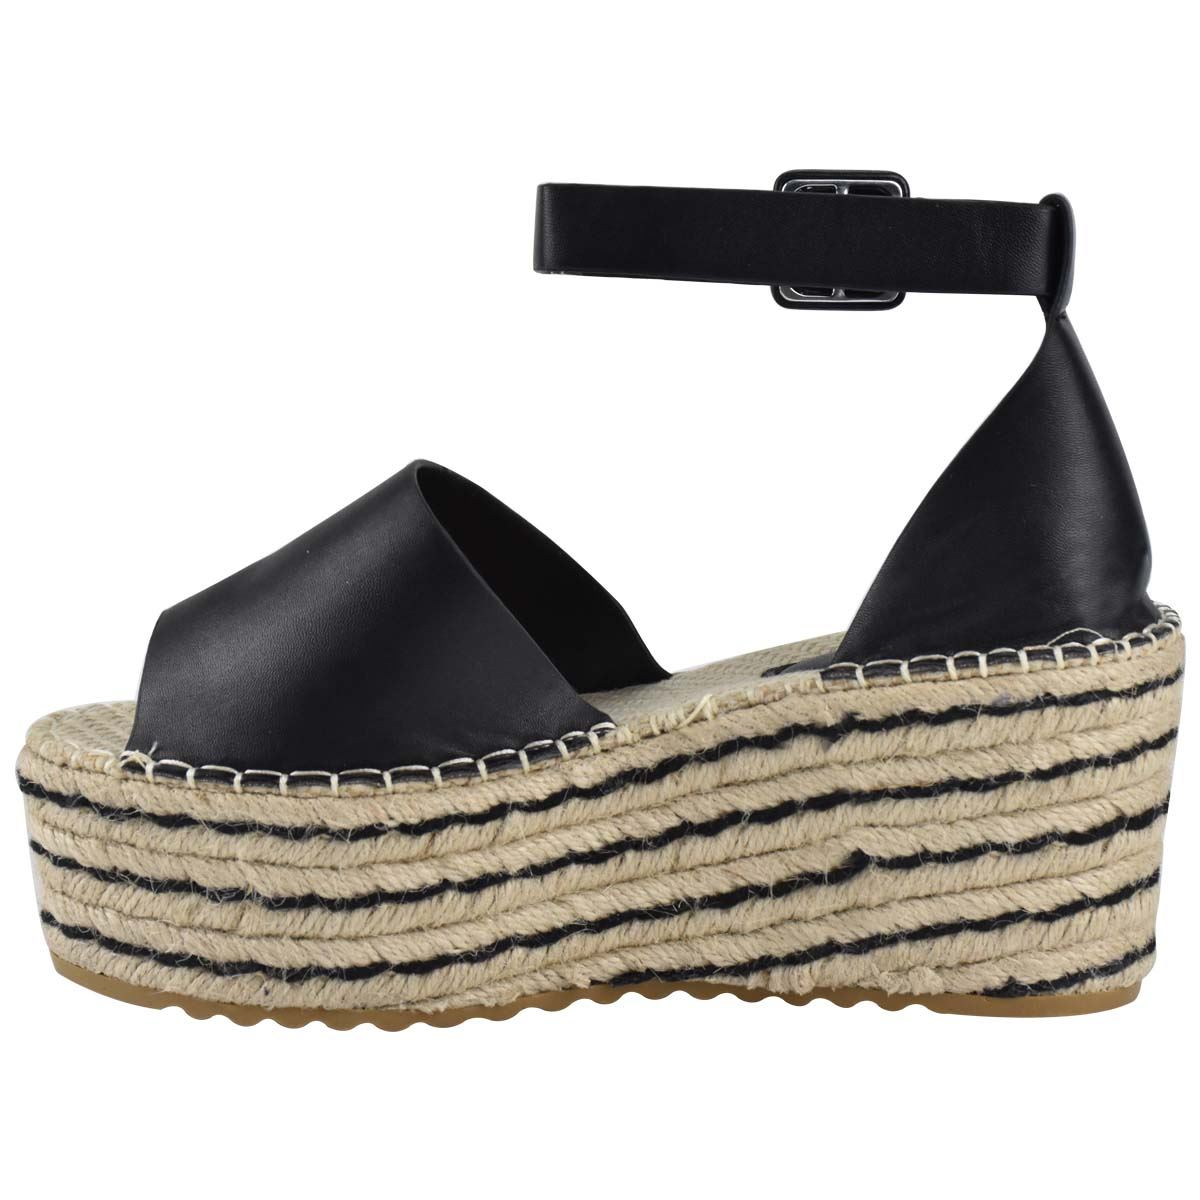 Womens-Flatform-Platform-High-Wedge-Black-Tan-Faux-Leather-Summer-Sandals-Size thumbnail 5